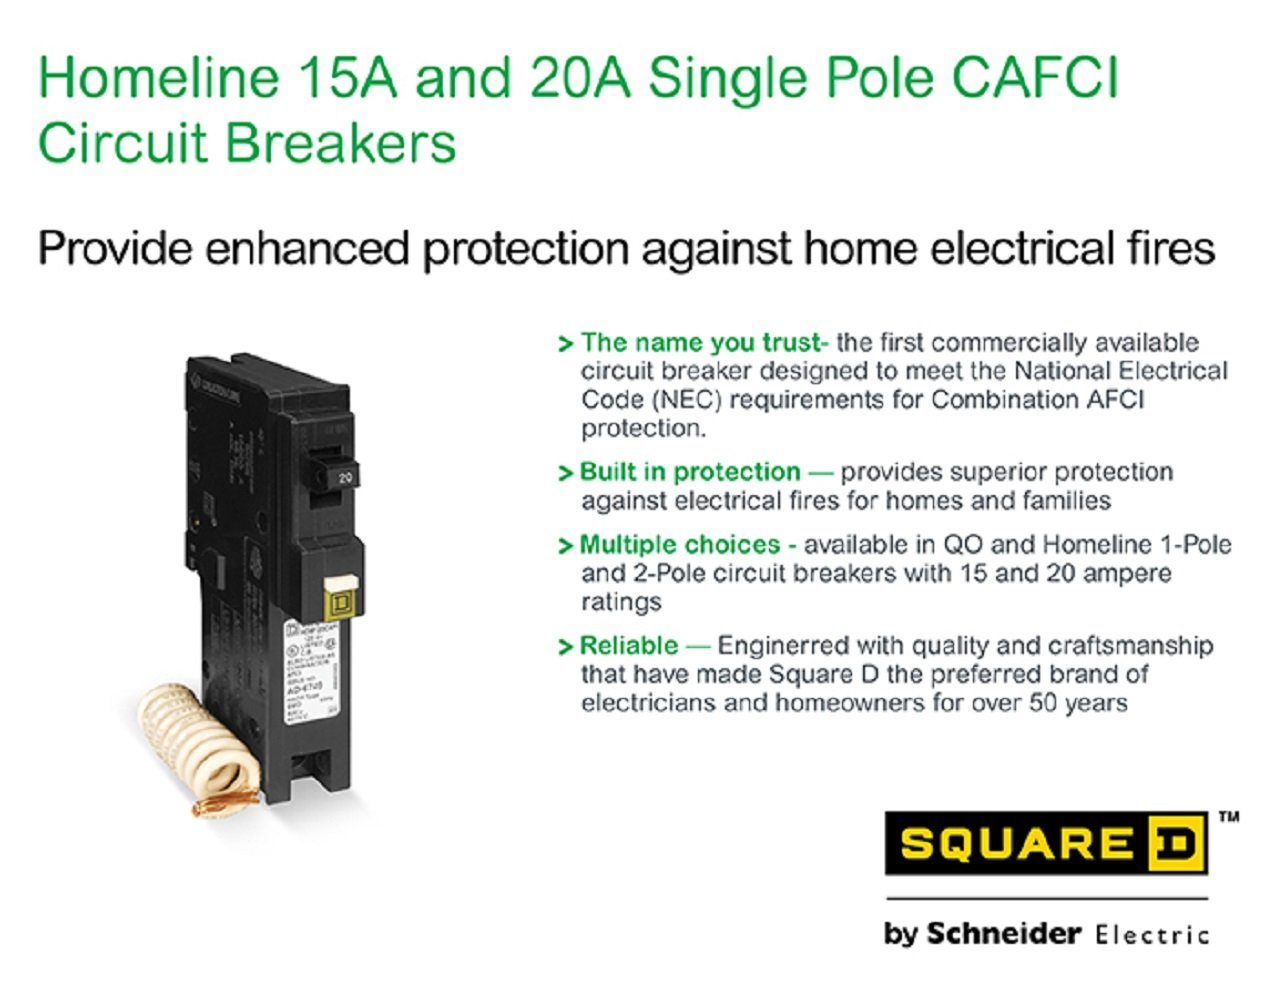 Square D By Schneider Electric Hom115cafic Homeline 15 Amp Single Qo 15amp 1pole Combination Arc Fault Circuit Breaker At Lowescom Pole Cafci